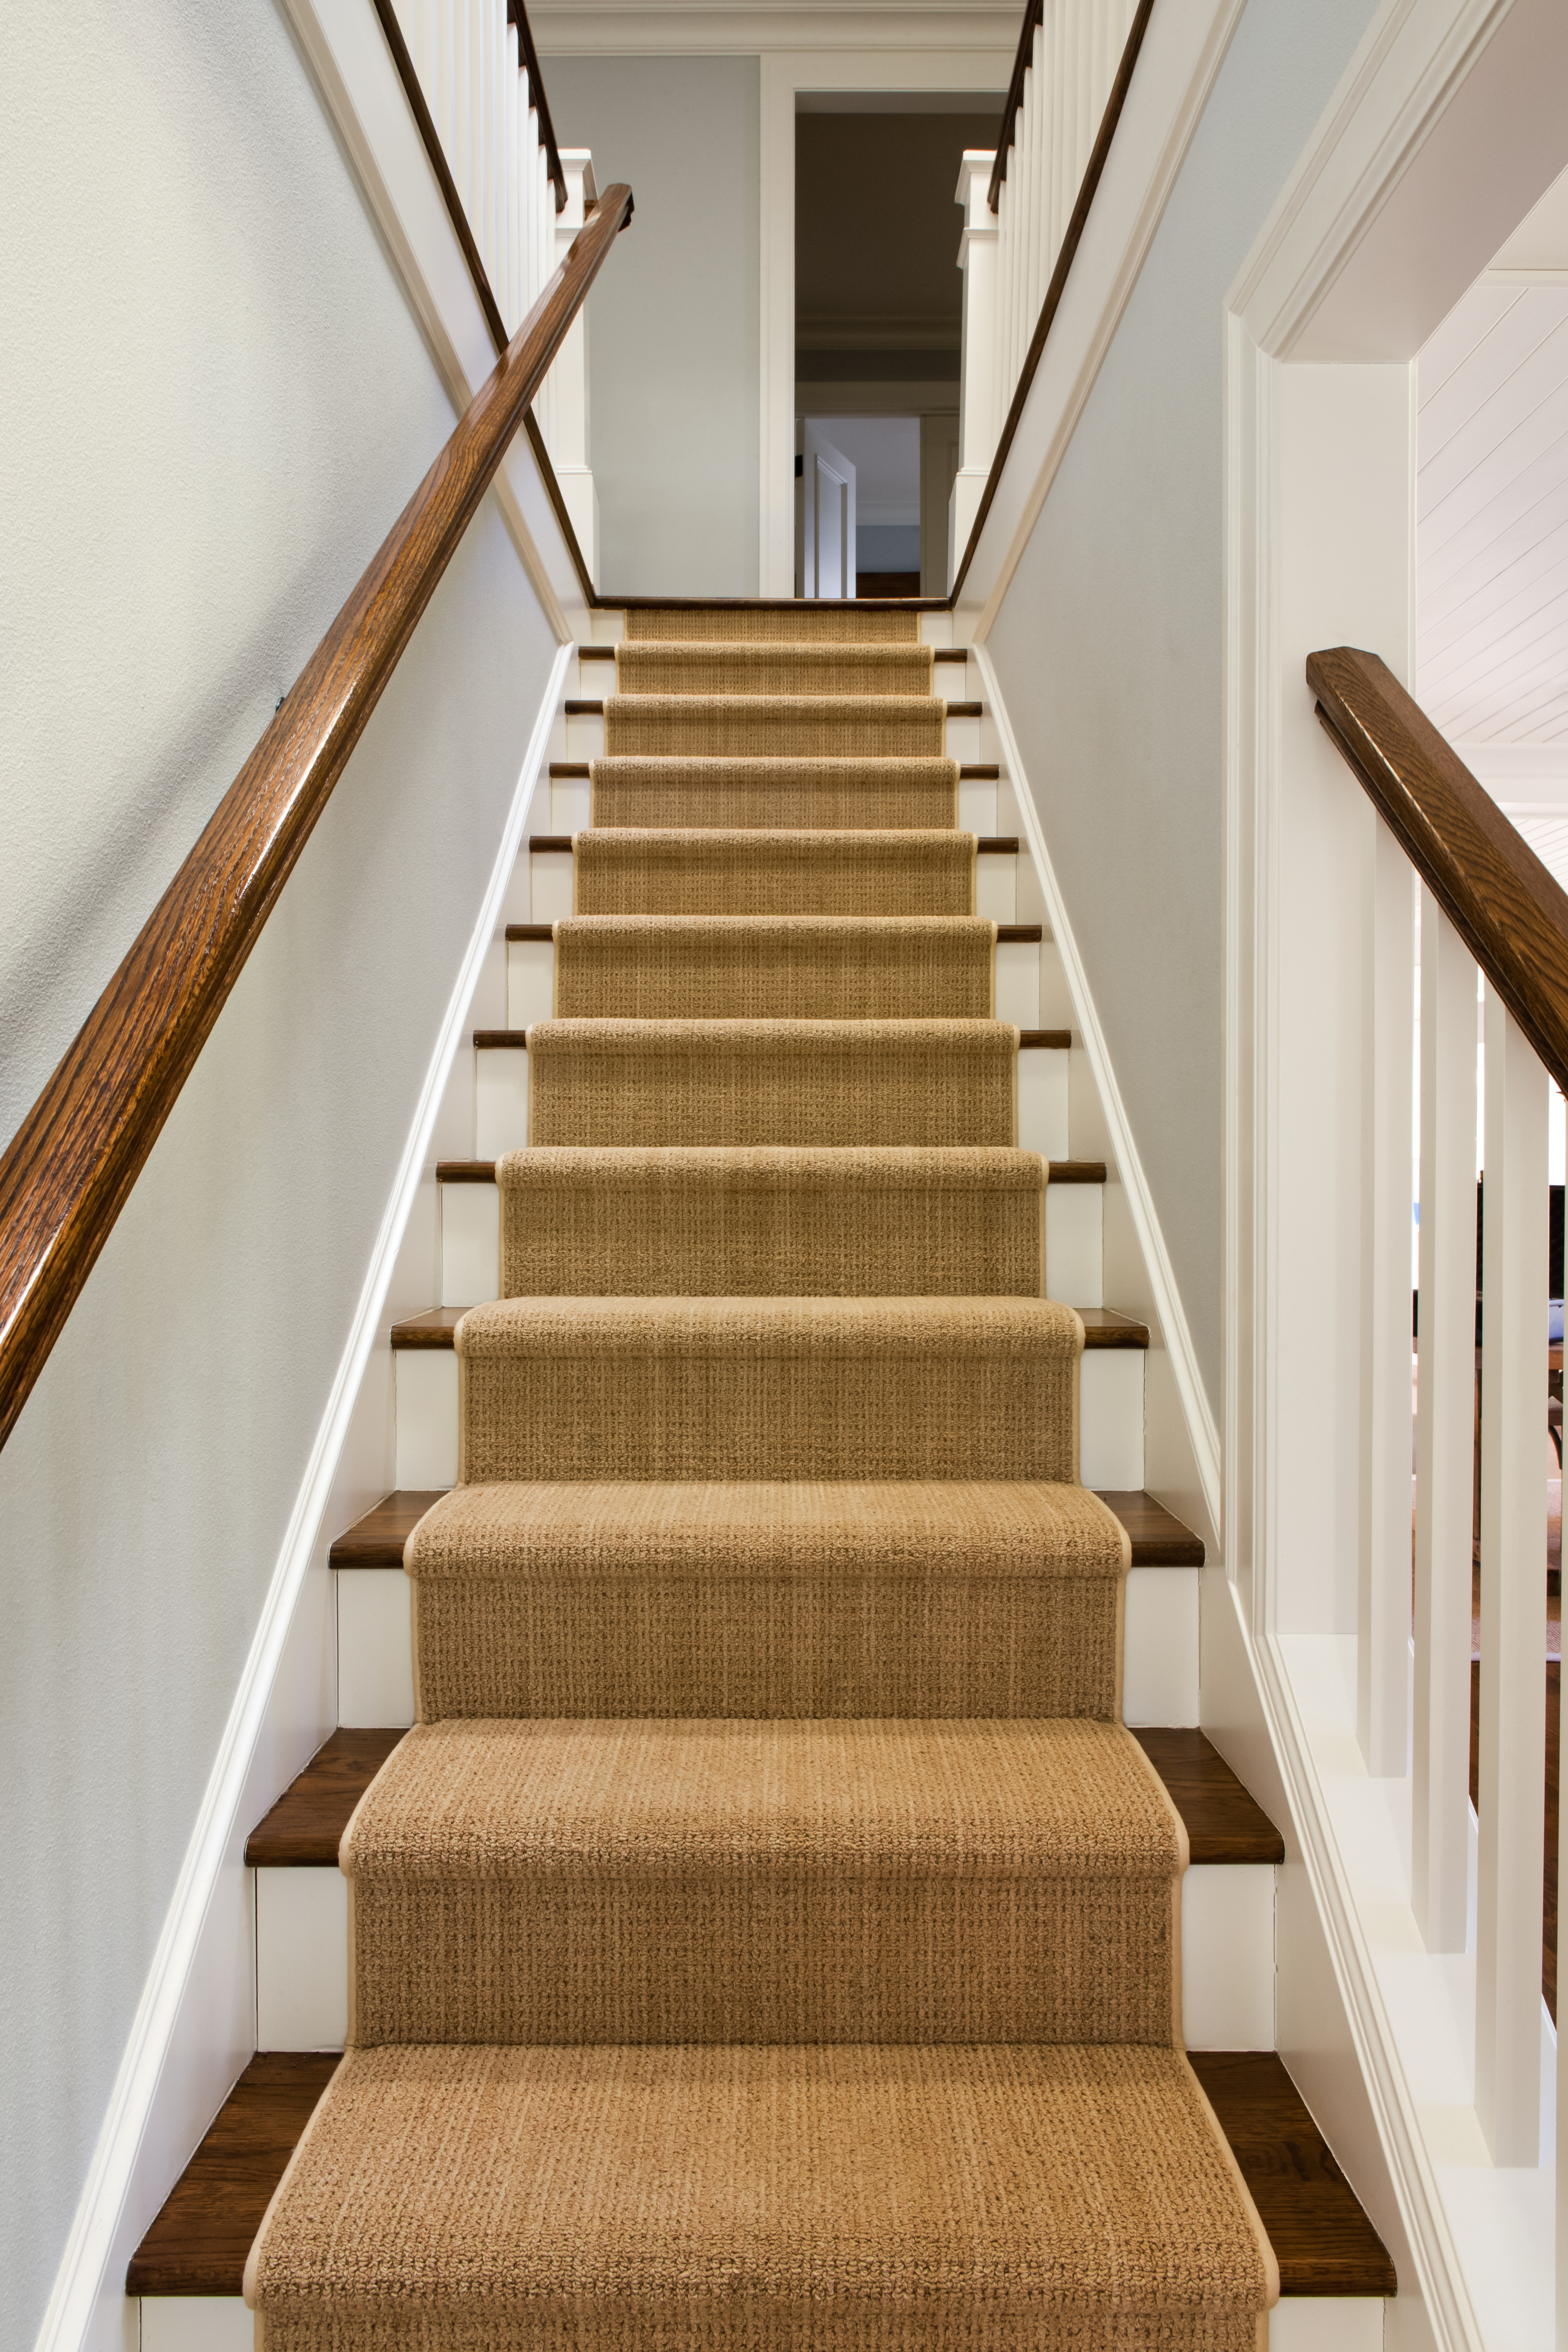 Stair Carpet Freehold Marlboro Manalapan In Carpet For Wood Stairs (#16 of 20)